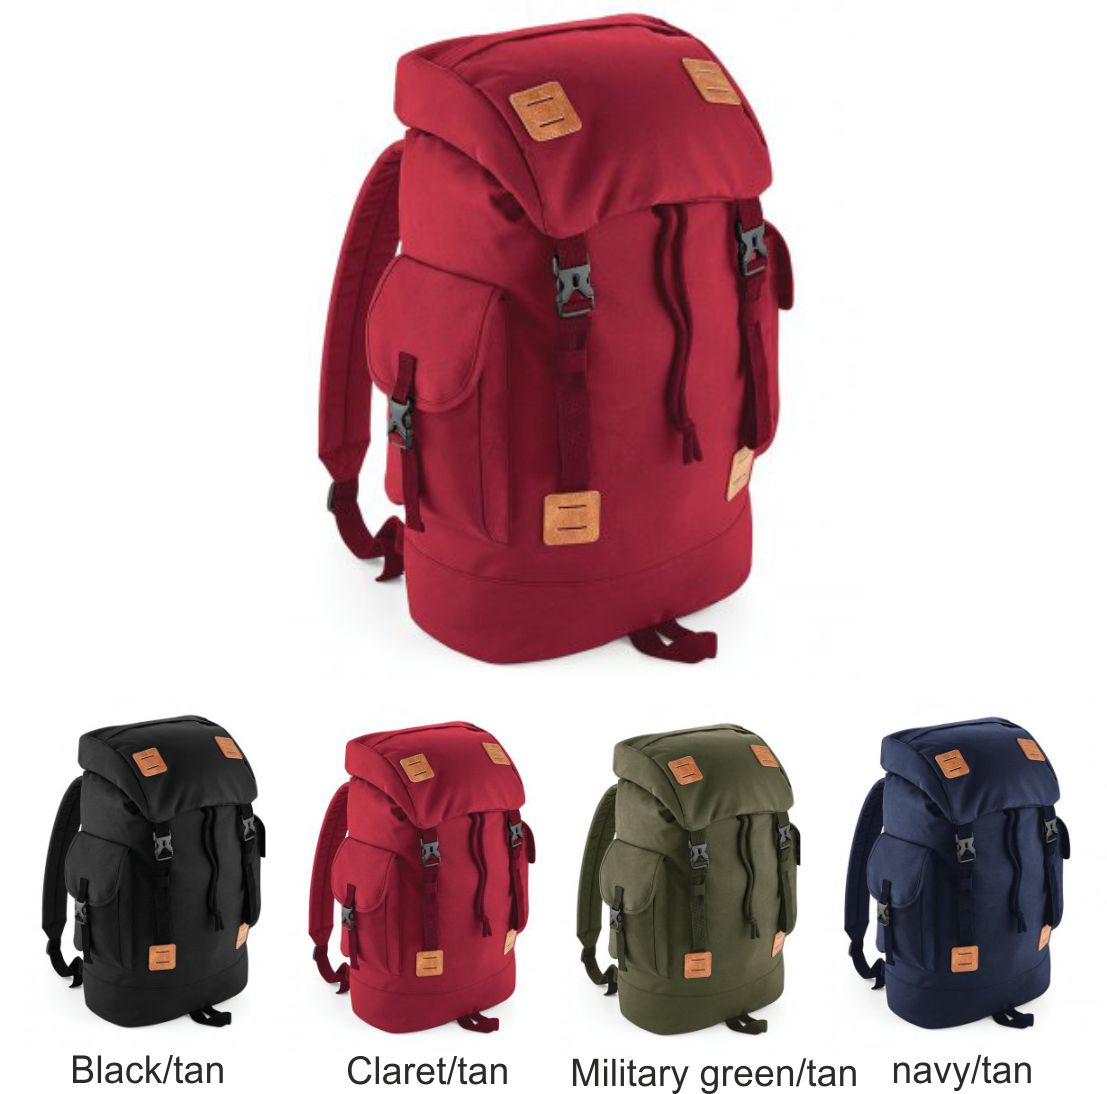 BG620 Urban Explorer Backpack